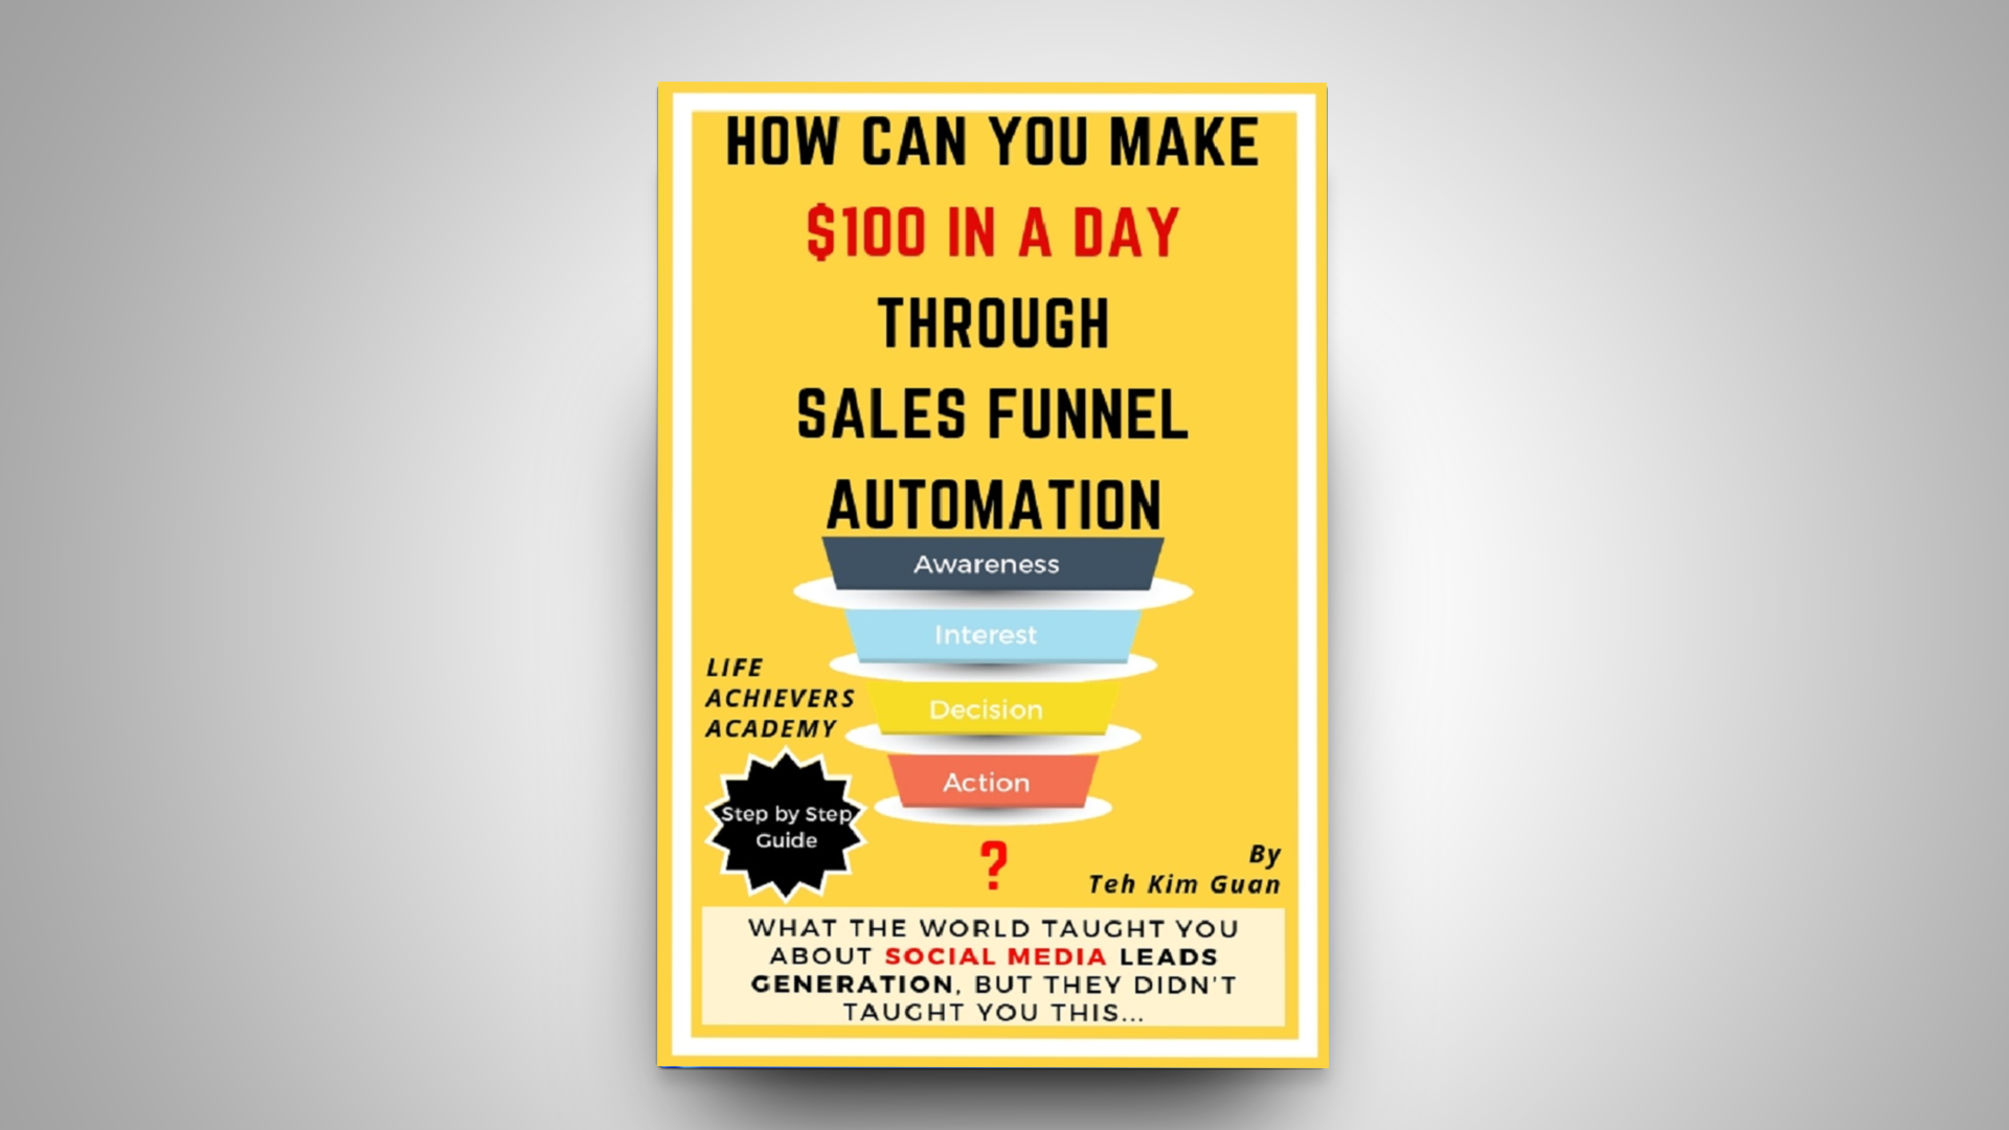 Online]How Can You Make $100 USD In A Day Through Sales